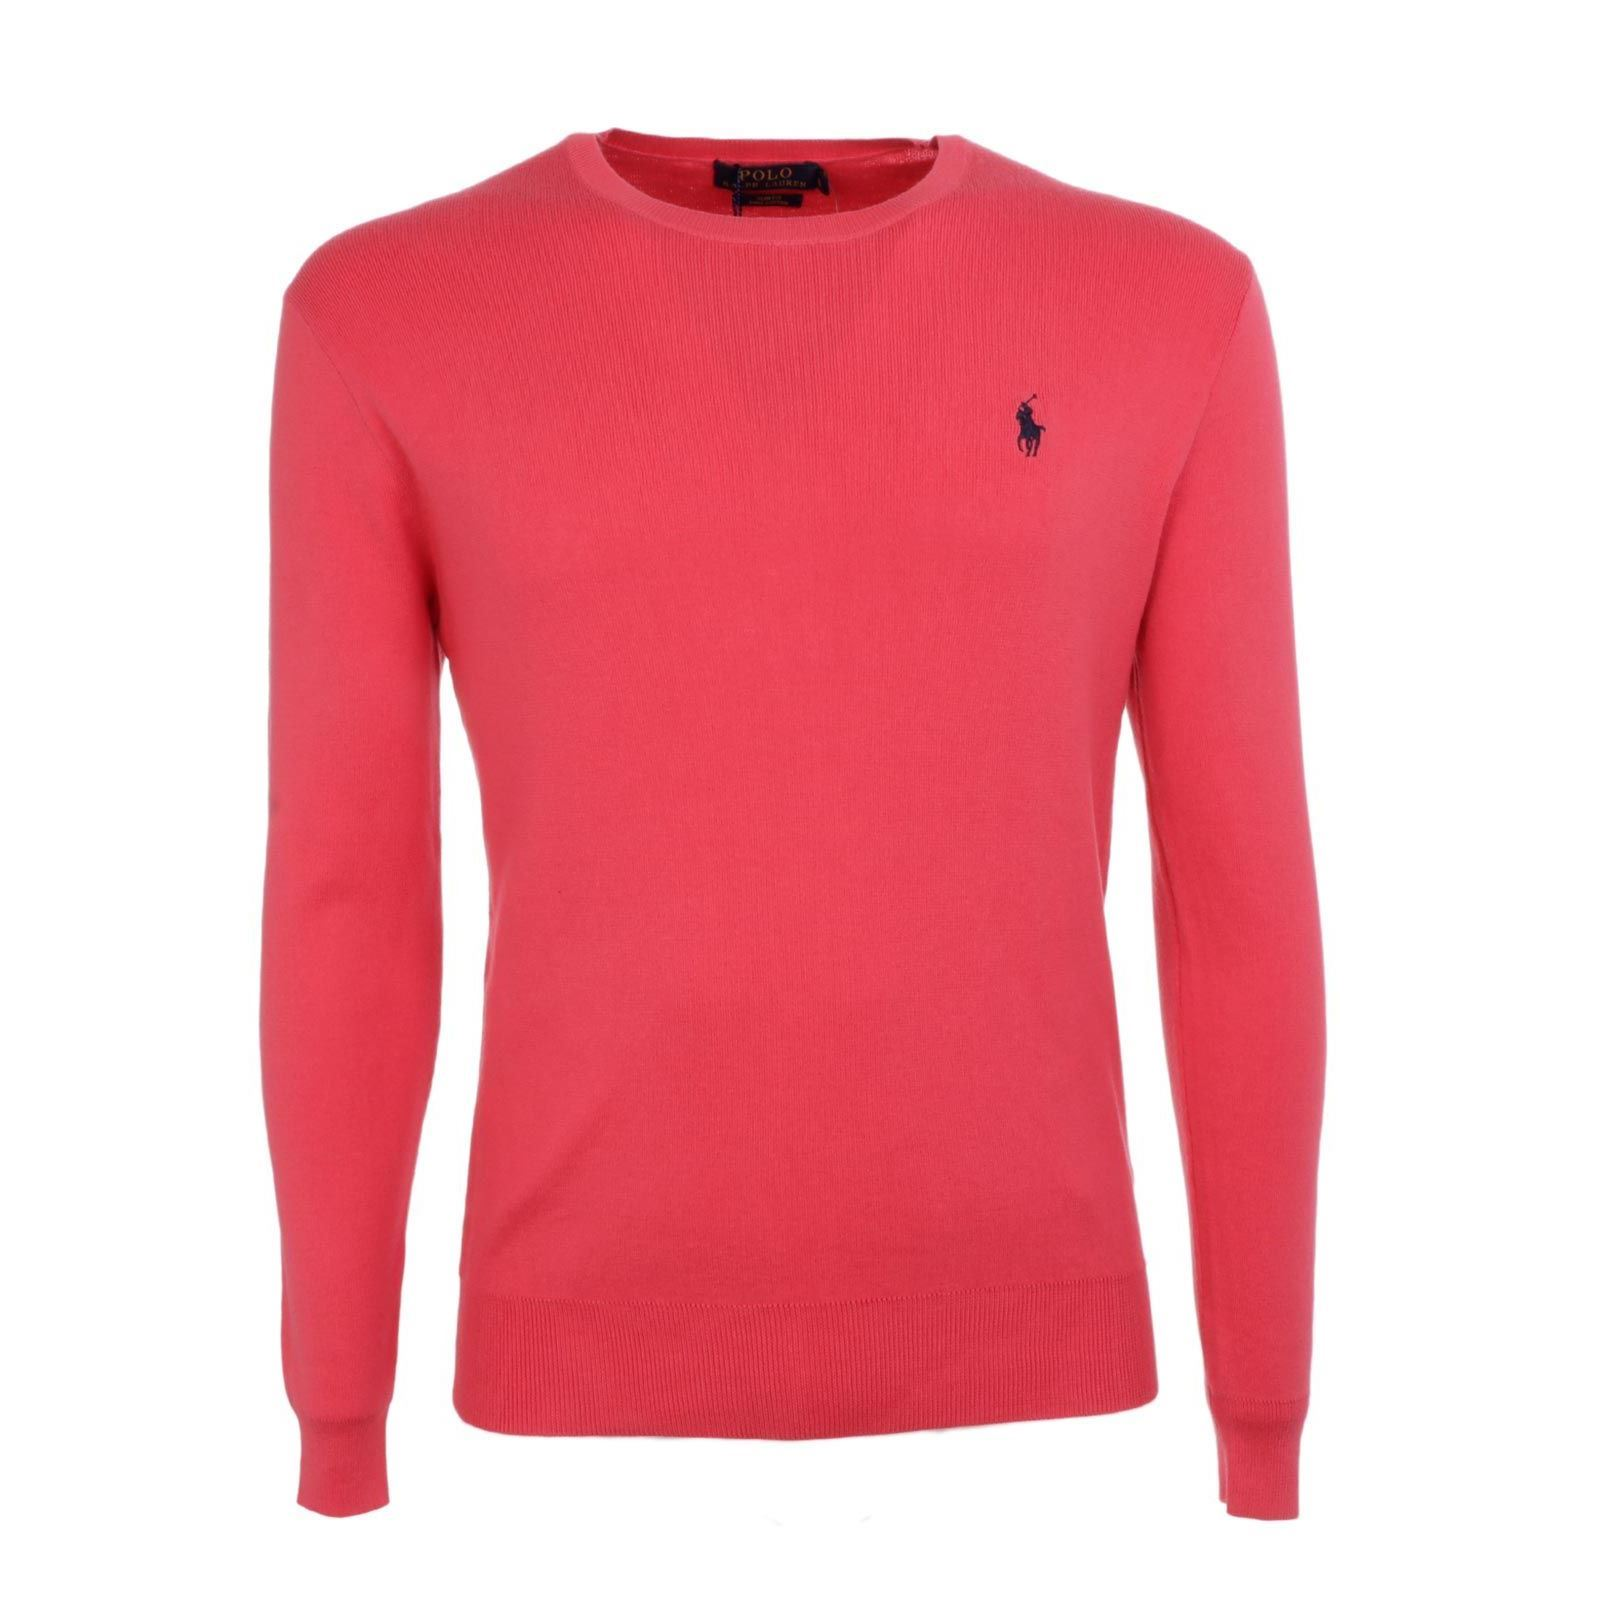 Homme Ralph Ralph PullRouge Ralph V PullRouge Lauren V Lauren Homme Homme PullRouge Lauren 5cLjq34RA